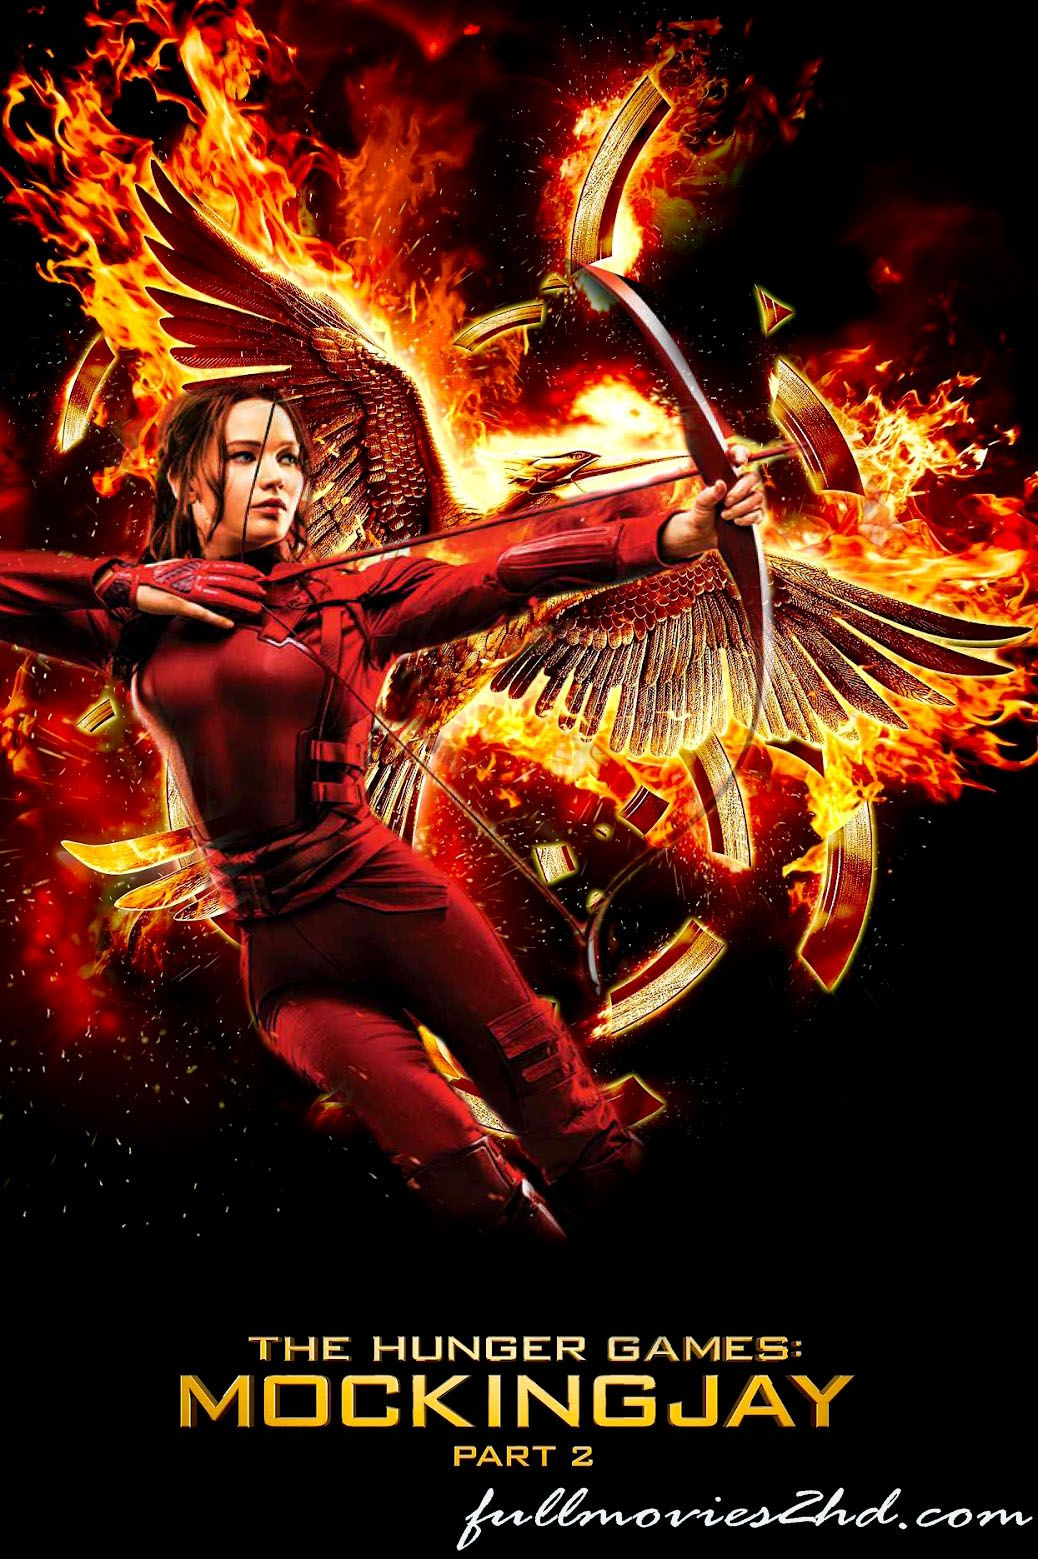 The Hunger Games Mockingjay Part 2 Movie Free